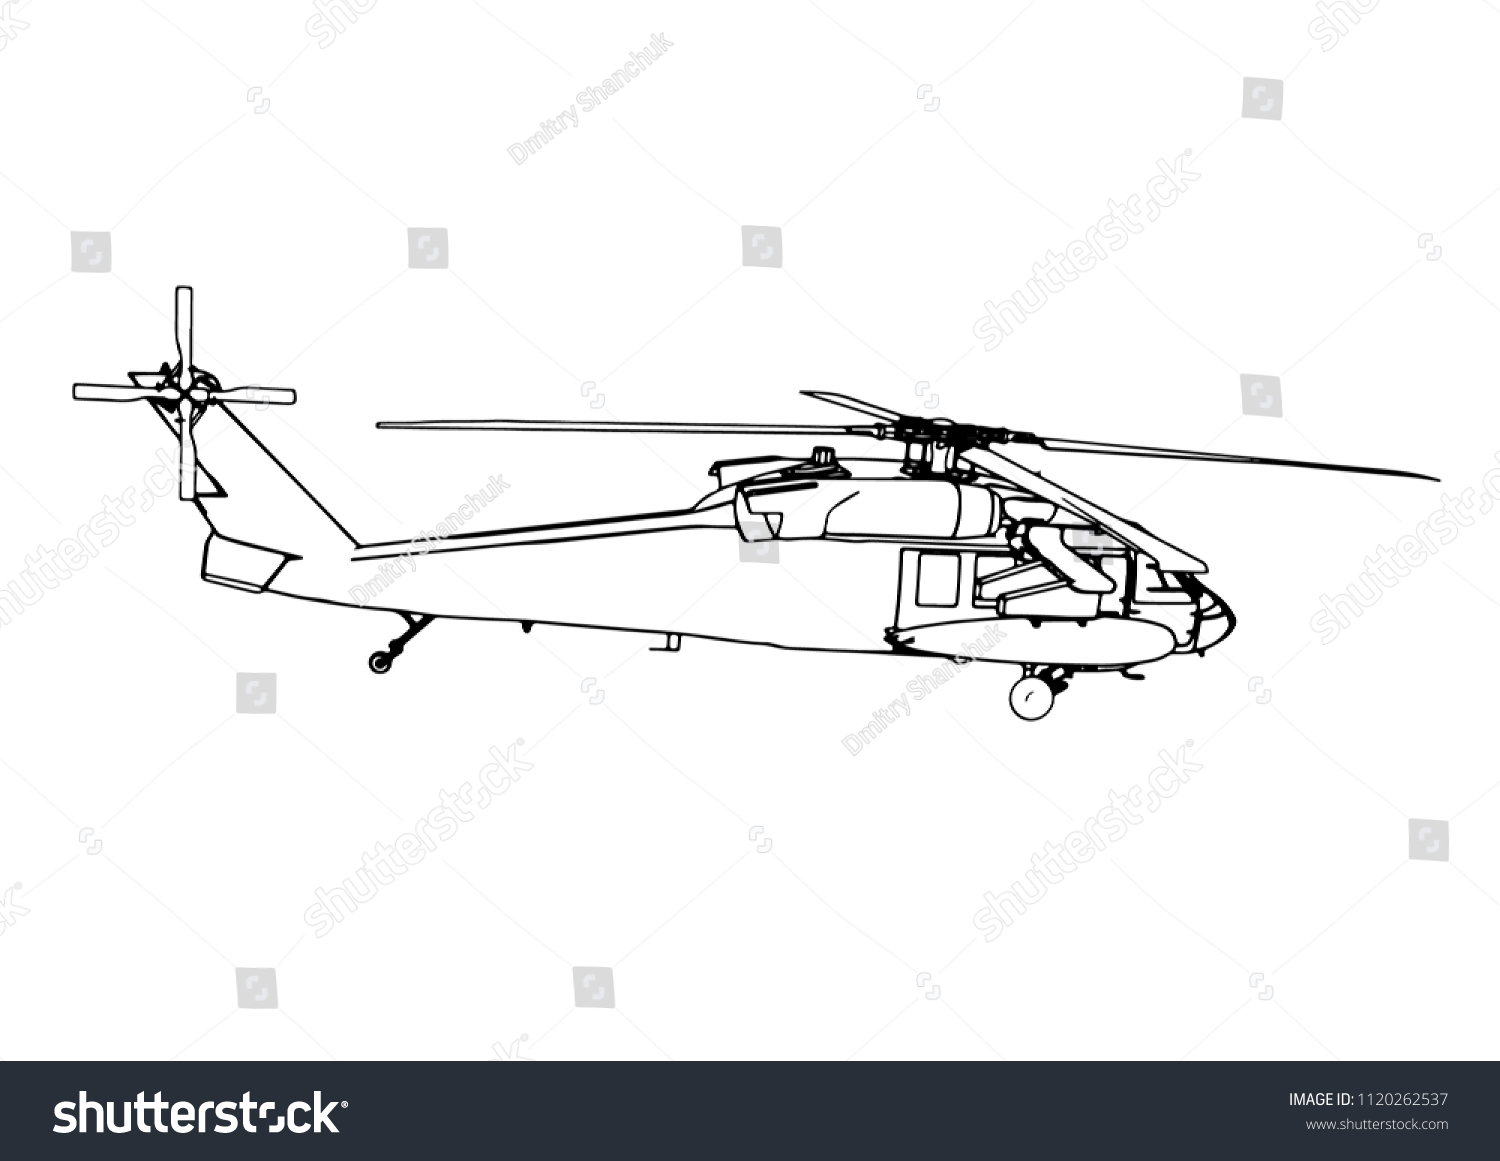 hight resolution of sketch of military helicopter vector